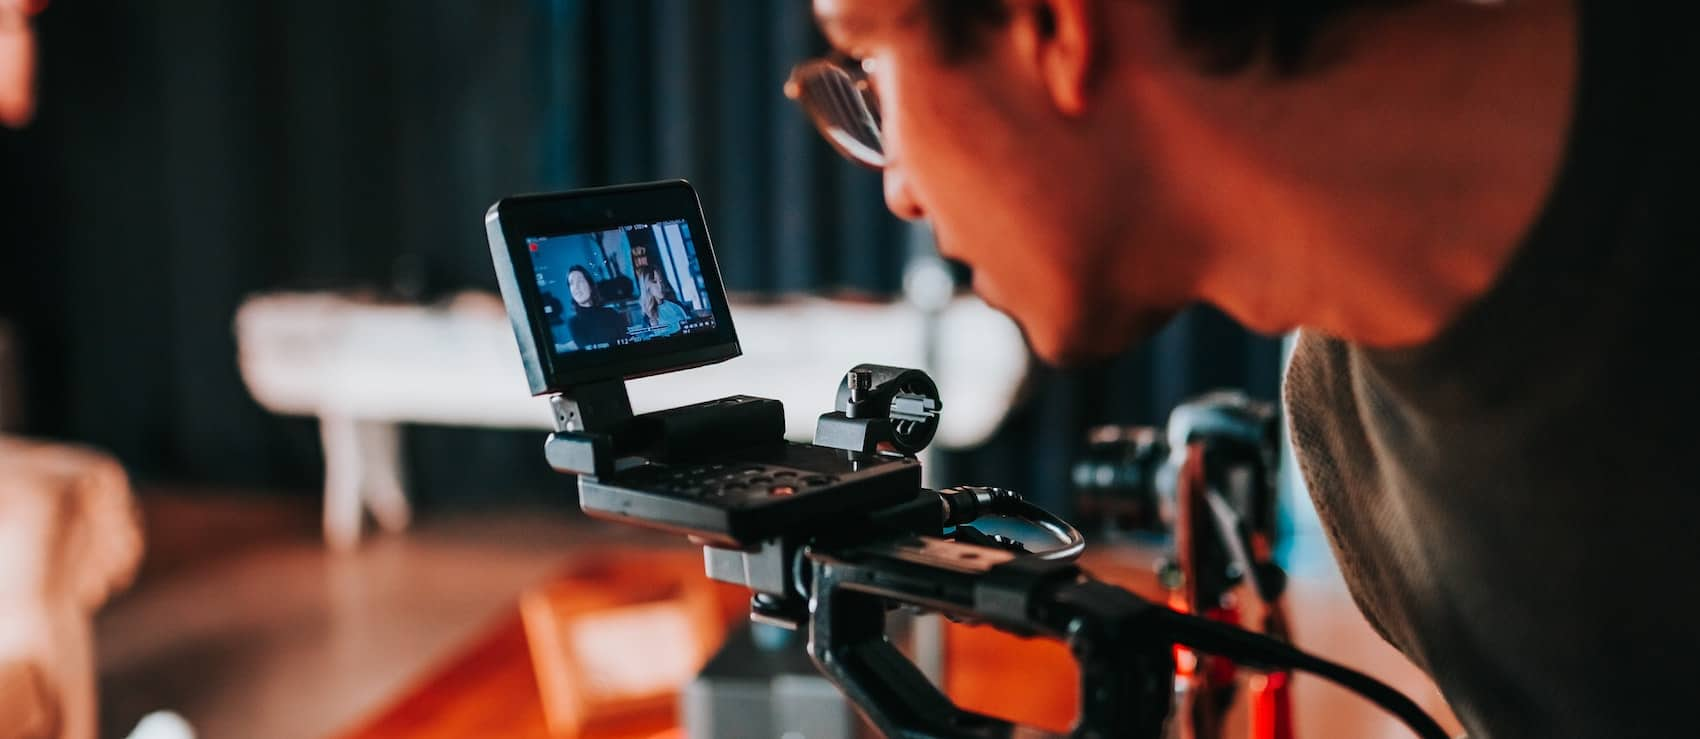 How to advertise on social media with video production Mauritius?